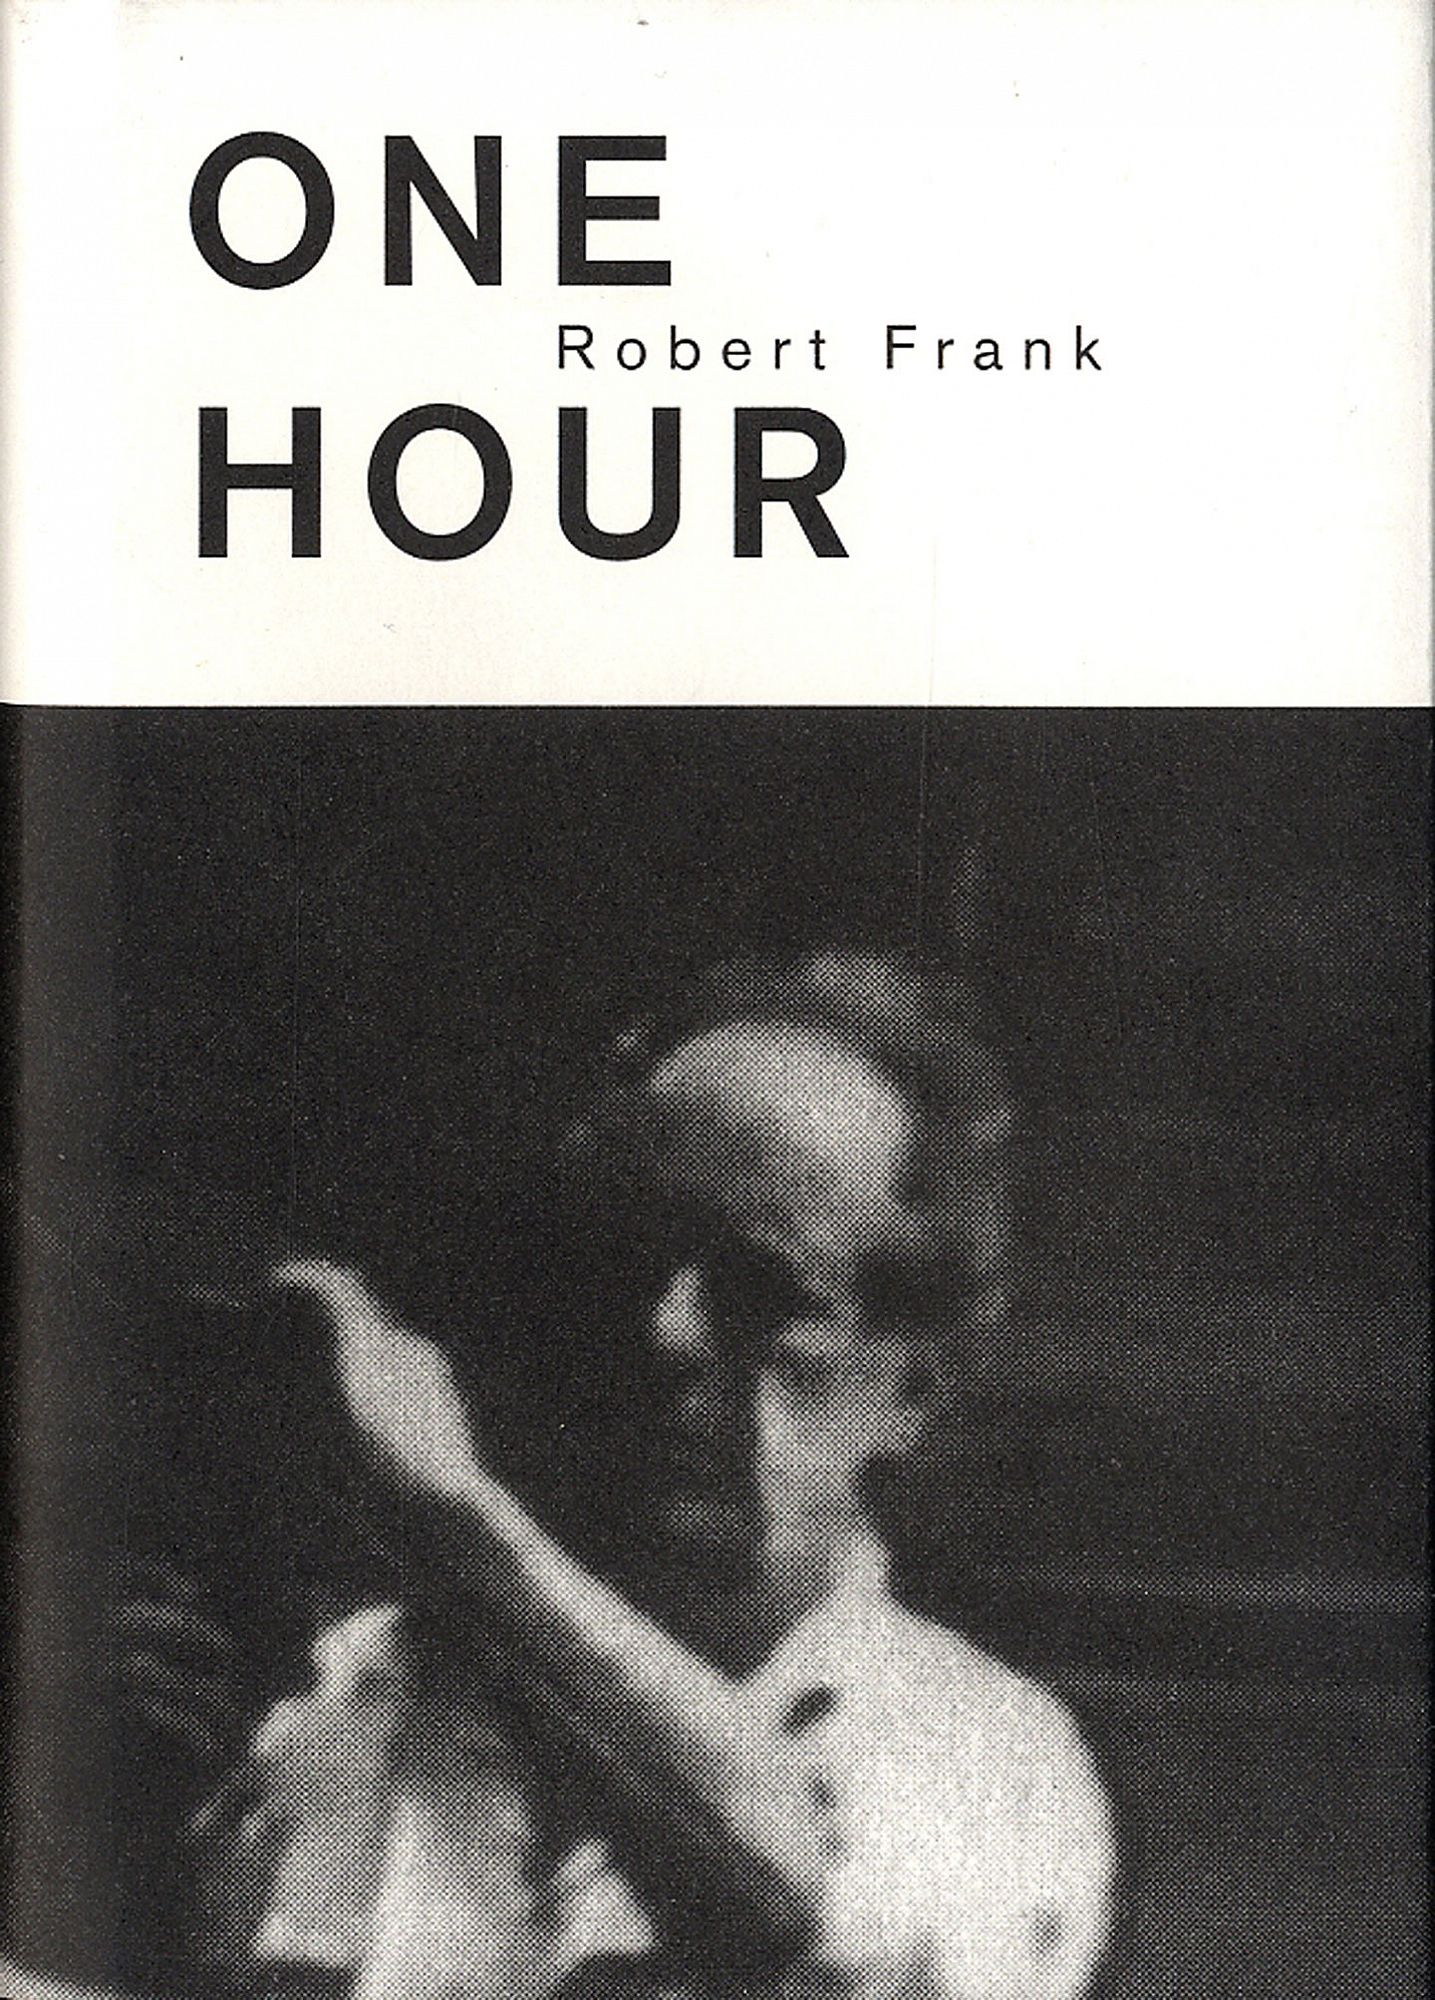 Robert Frank: One Hour (Steidl)